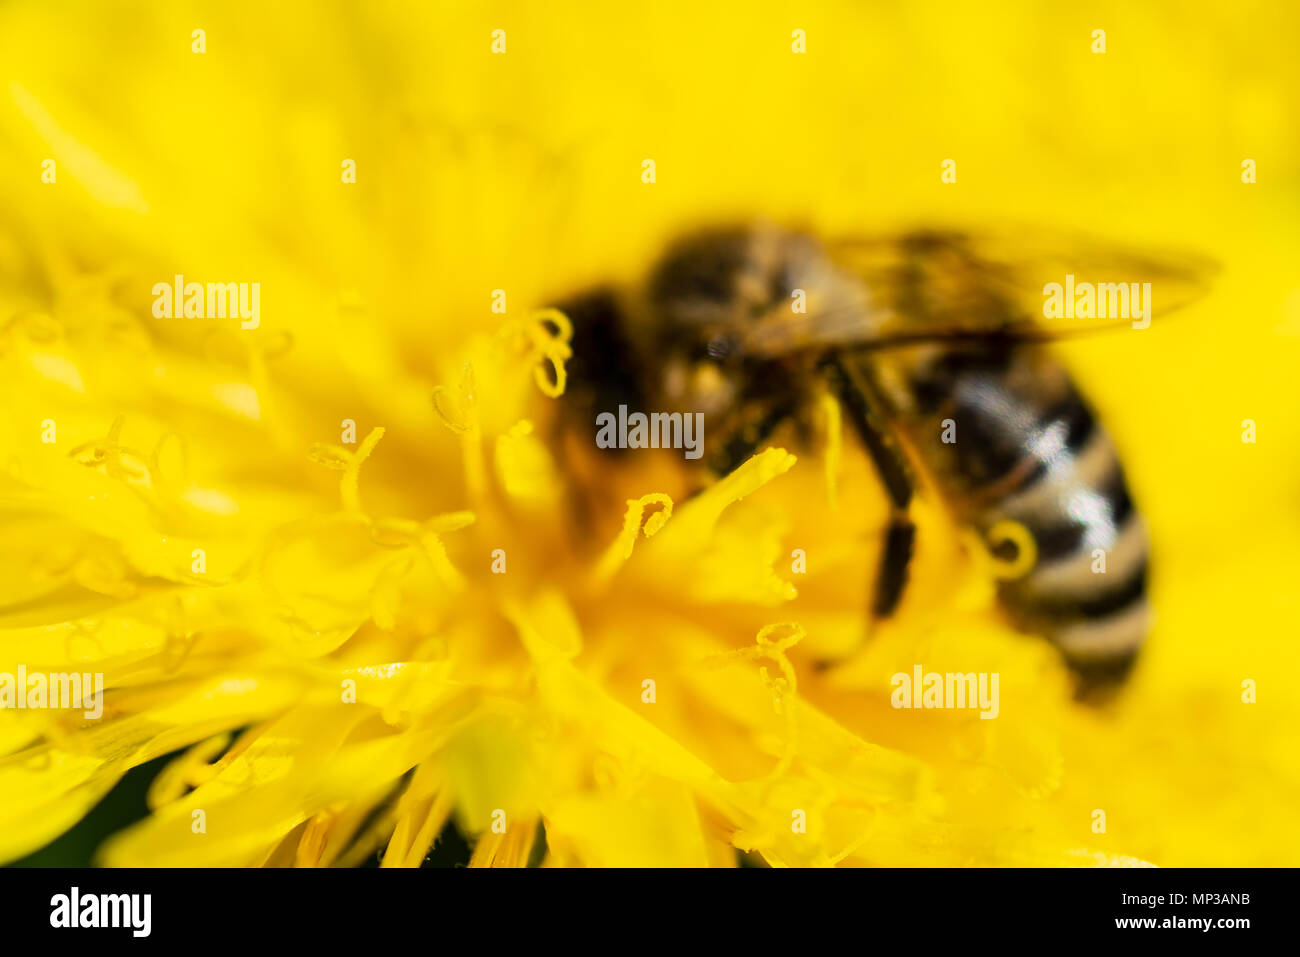 The bee is drinking nectar from a yellow dandelion. Soft focus photo. - Stock Image